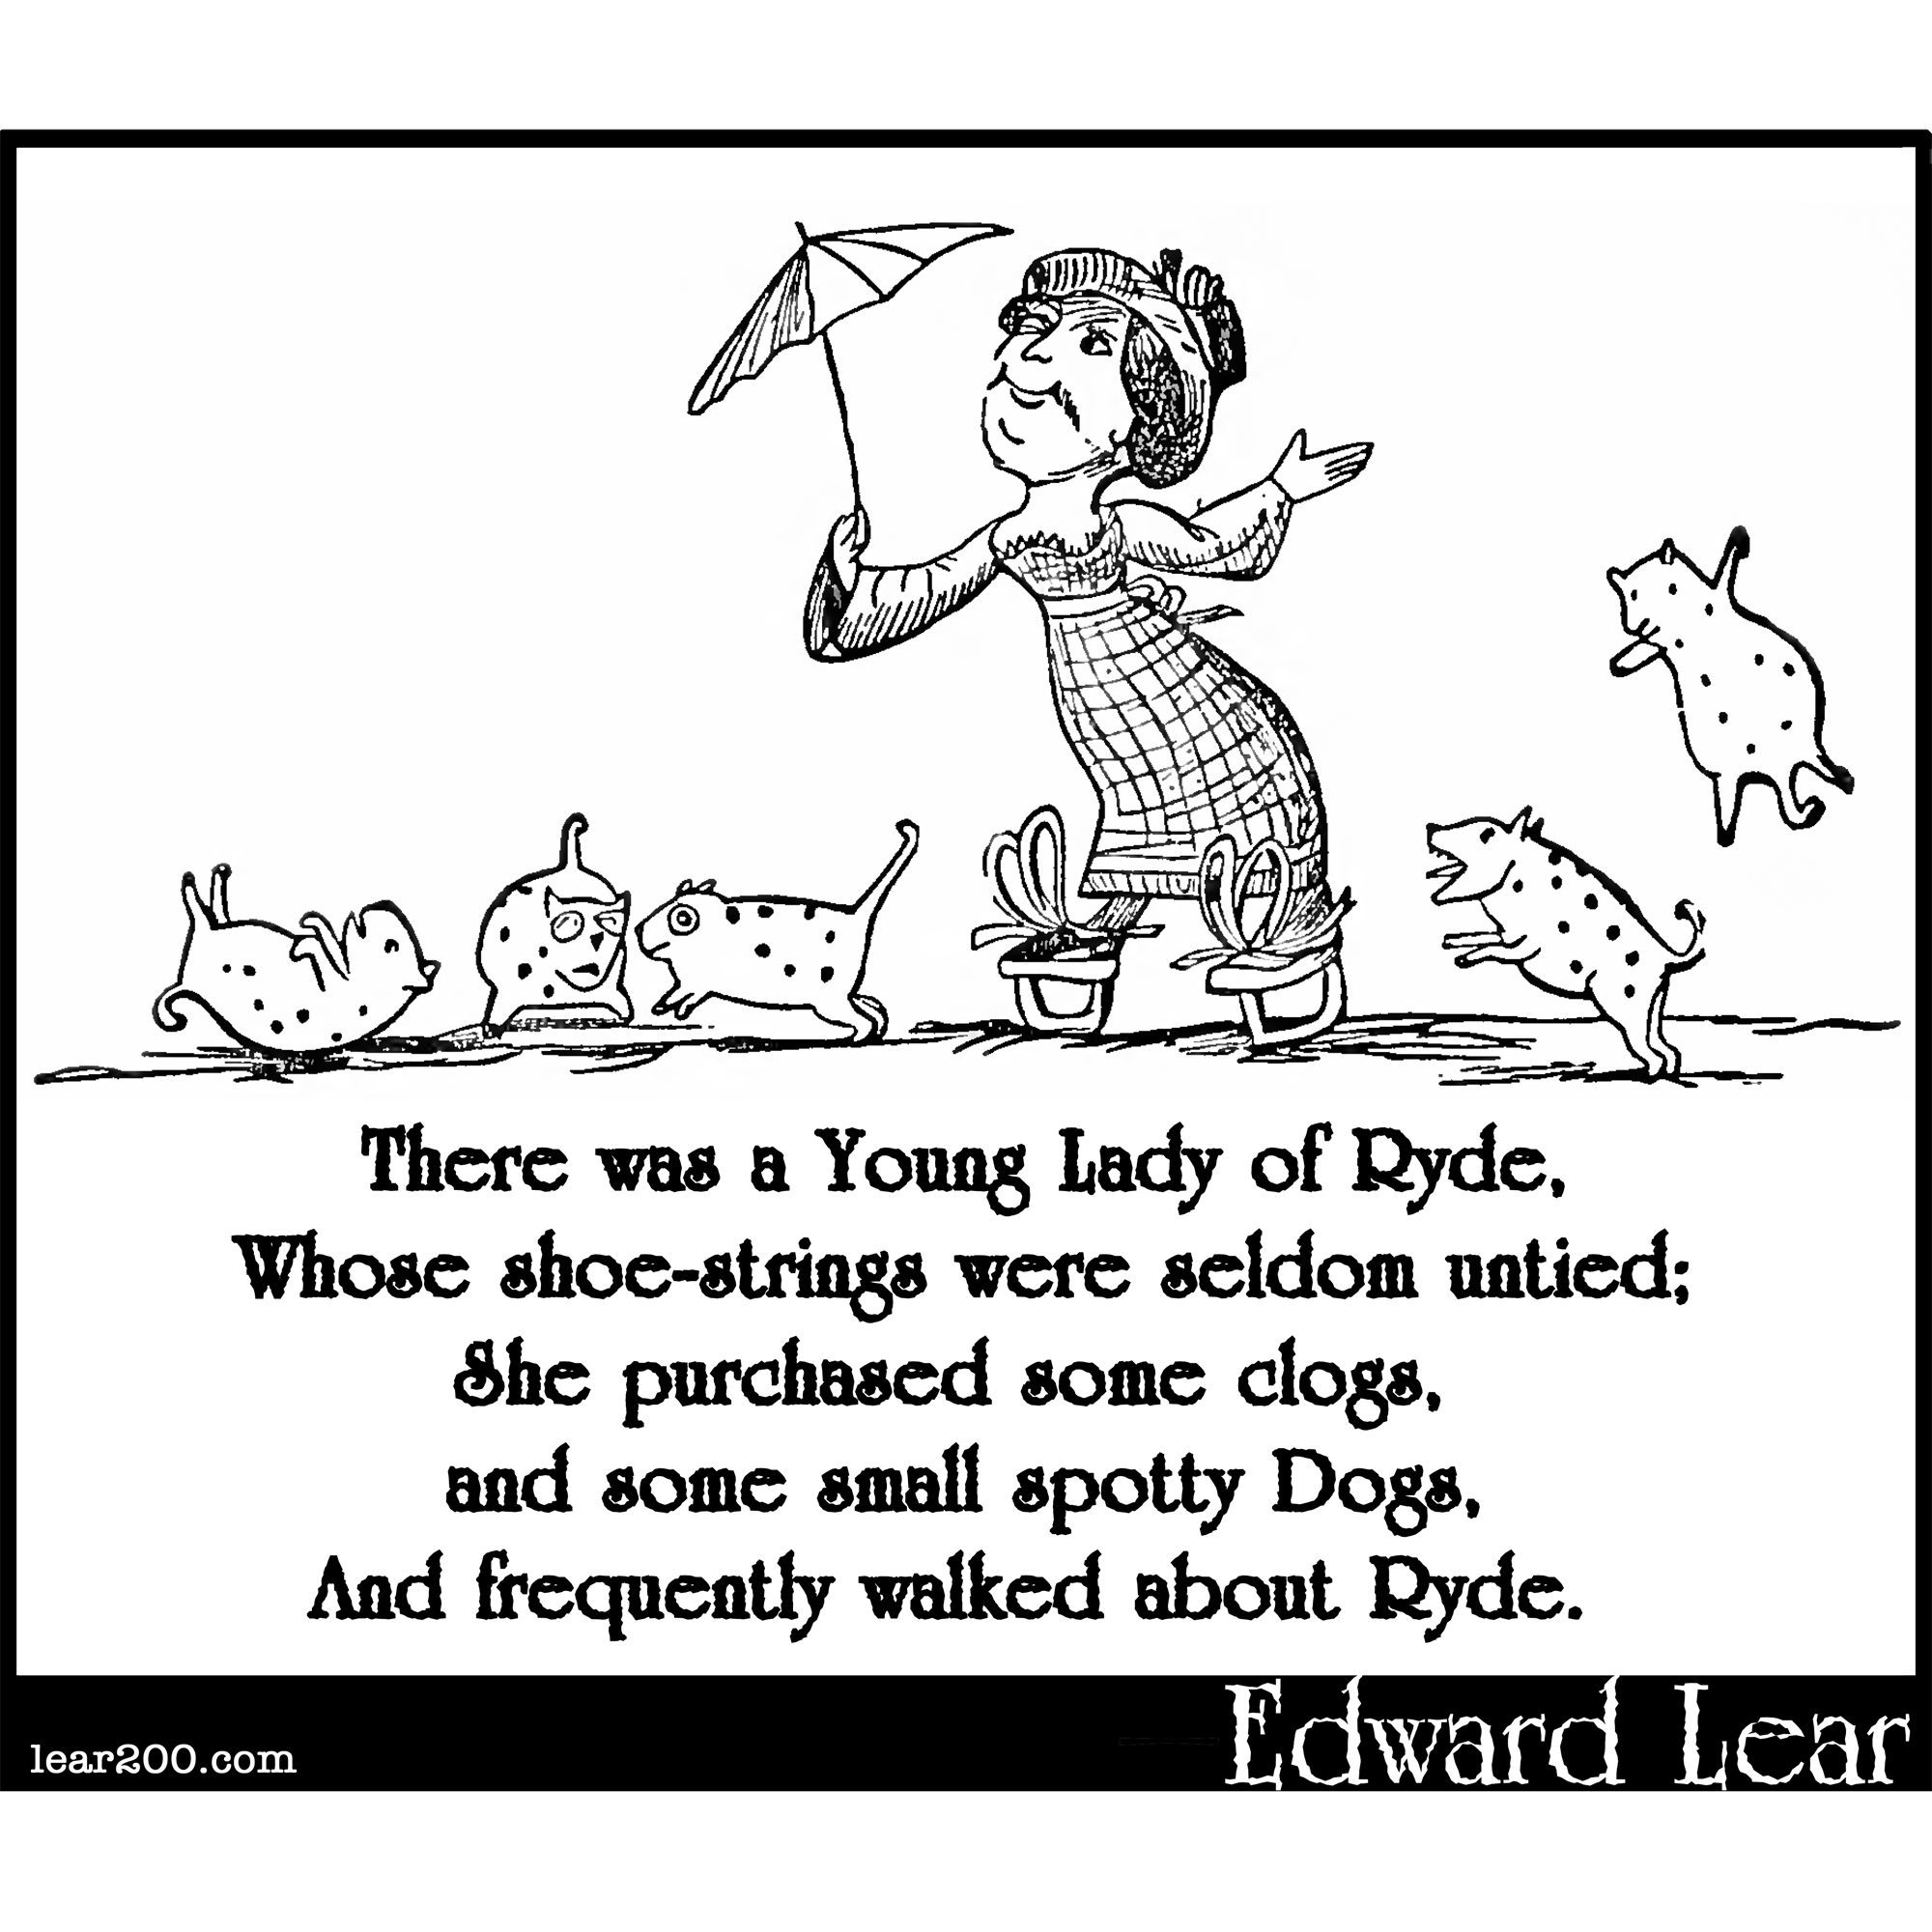 There was a Young Lady of Ryde